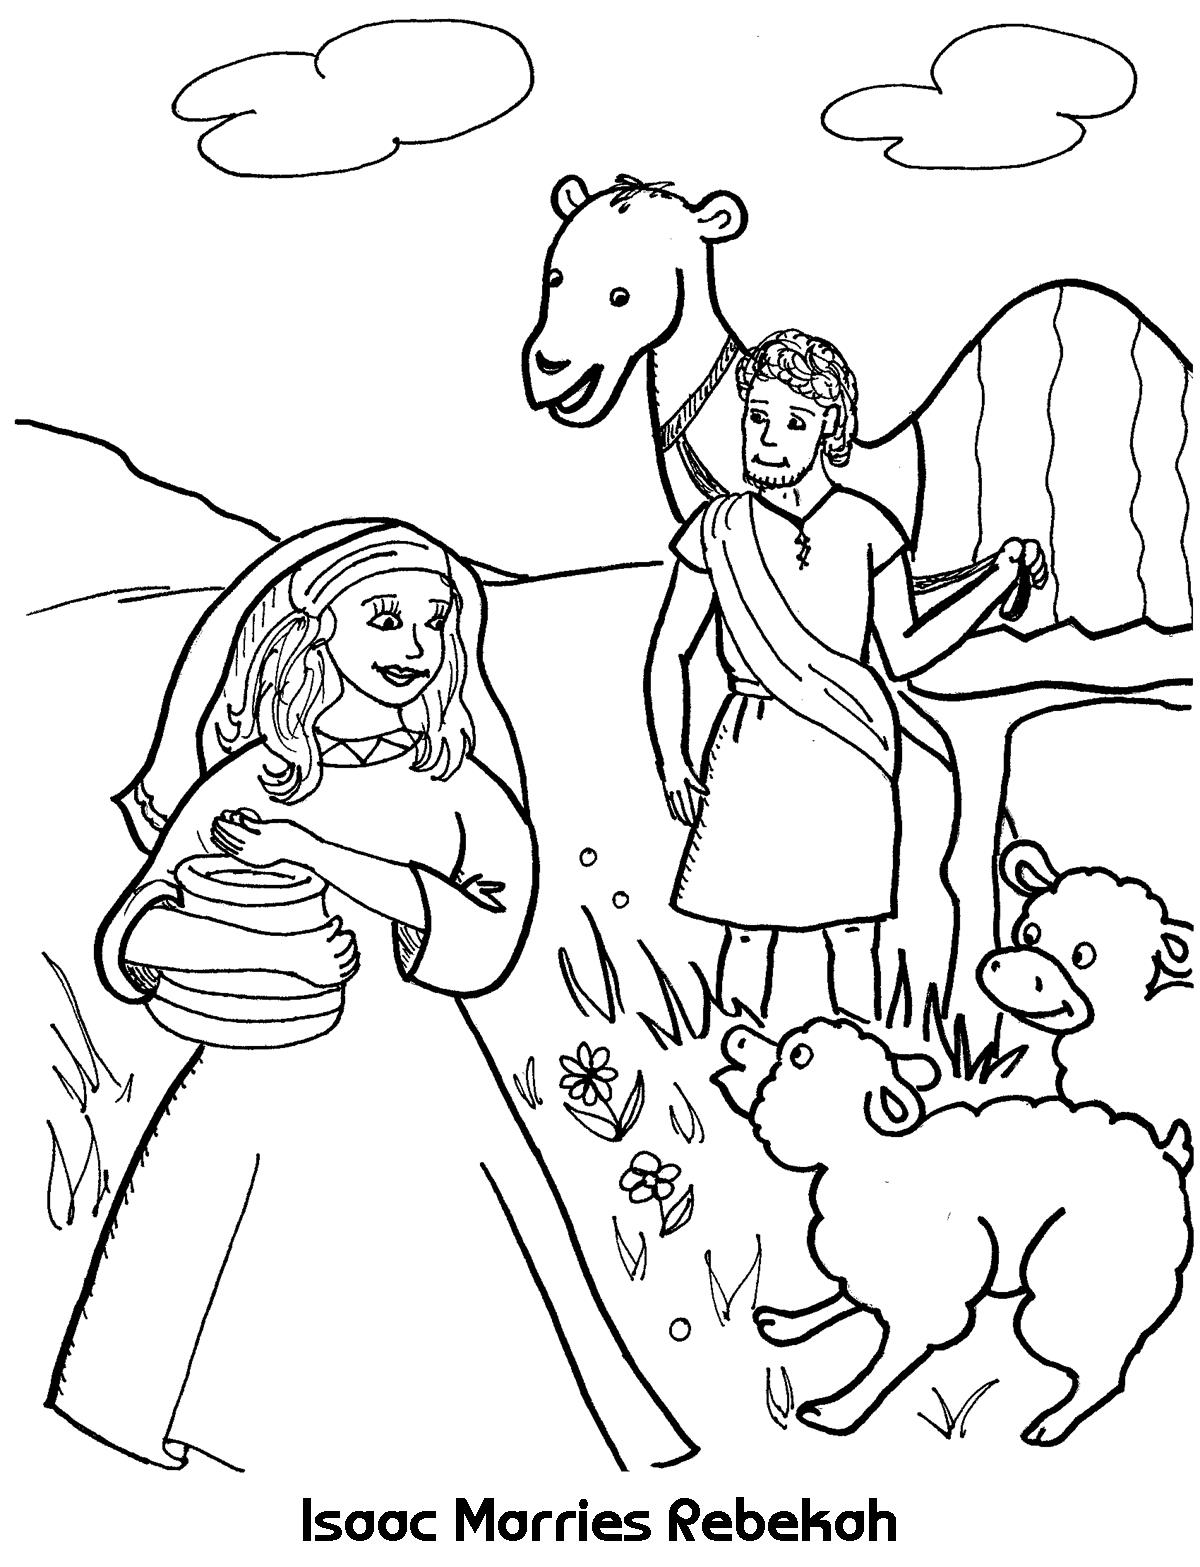 isaac and rebekah coloring pages 39 best images about isaac and rebekah on pinterest pages and coloring rebekah isaac